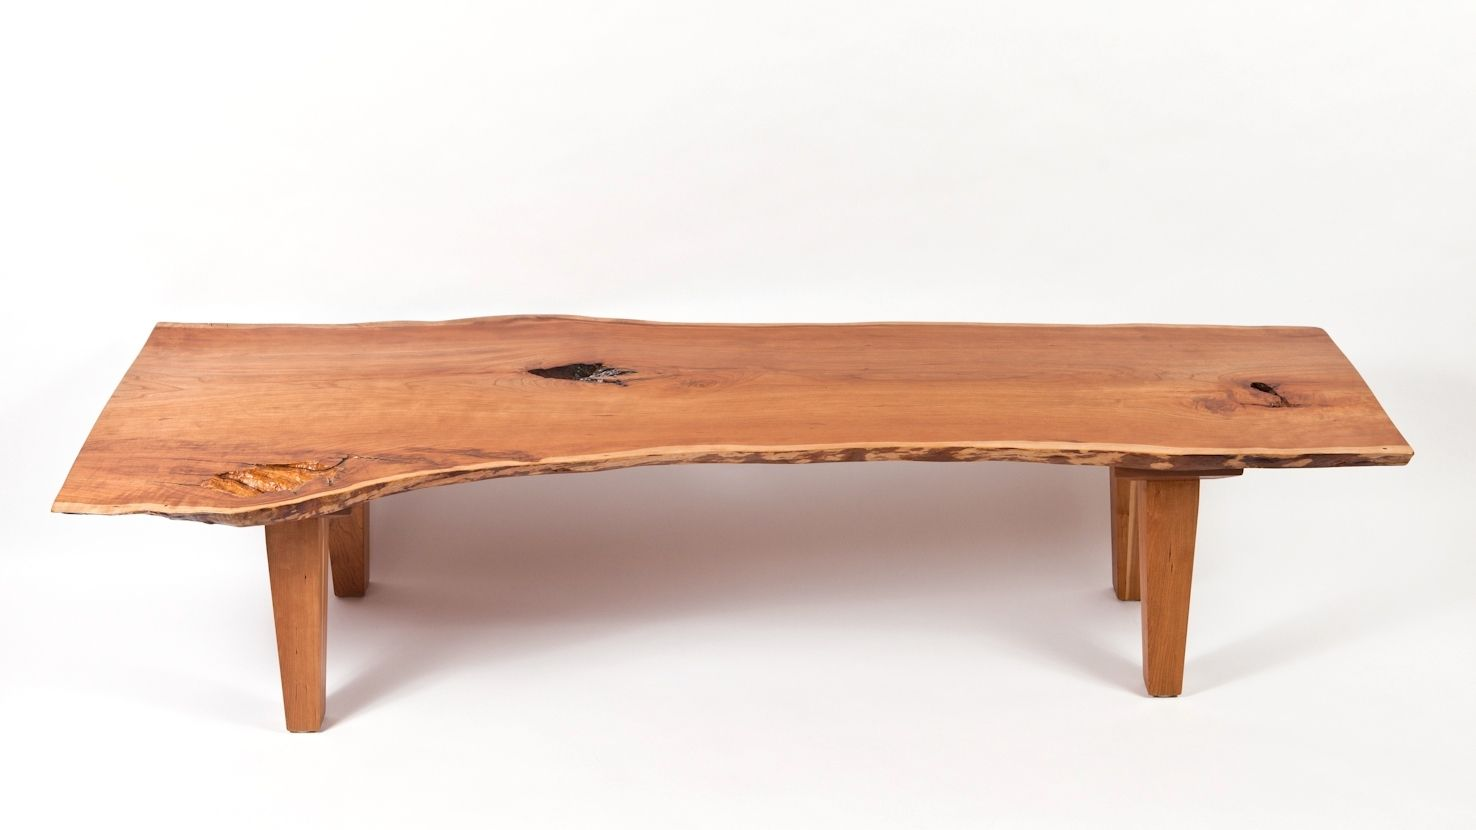 Custom Made Live Edge Vermont Cherry Coffee Table By Outerlands Gallery Inc